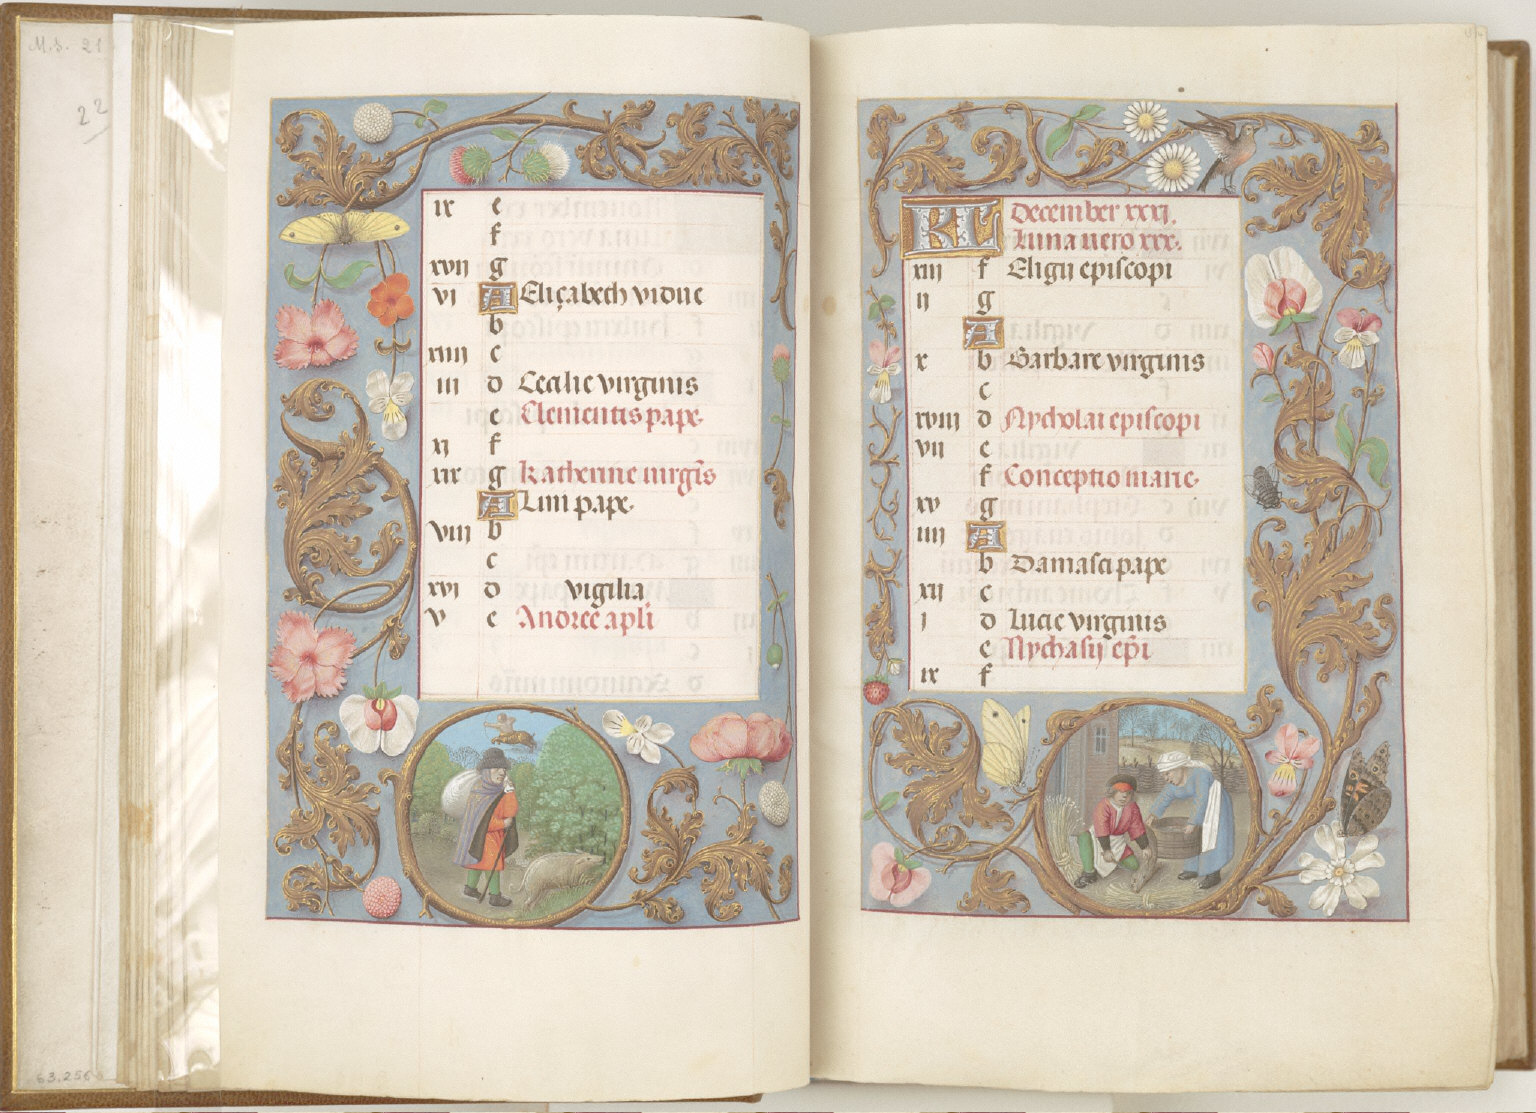 Hours of Queen Isabella the Catholic, Queen of Spain: November, fol. 12 (verso)